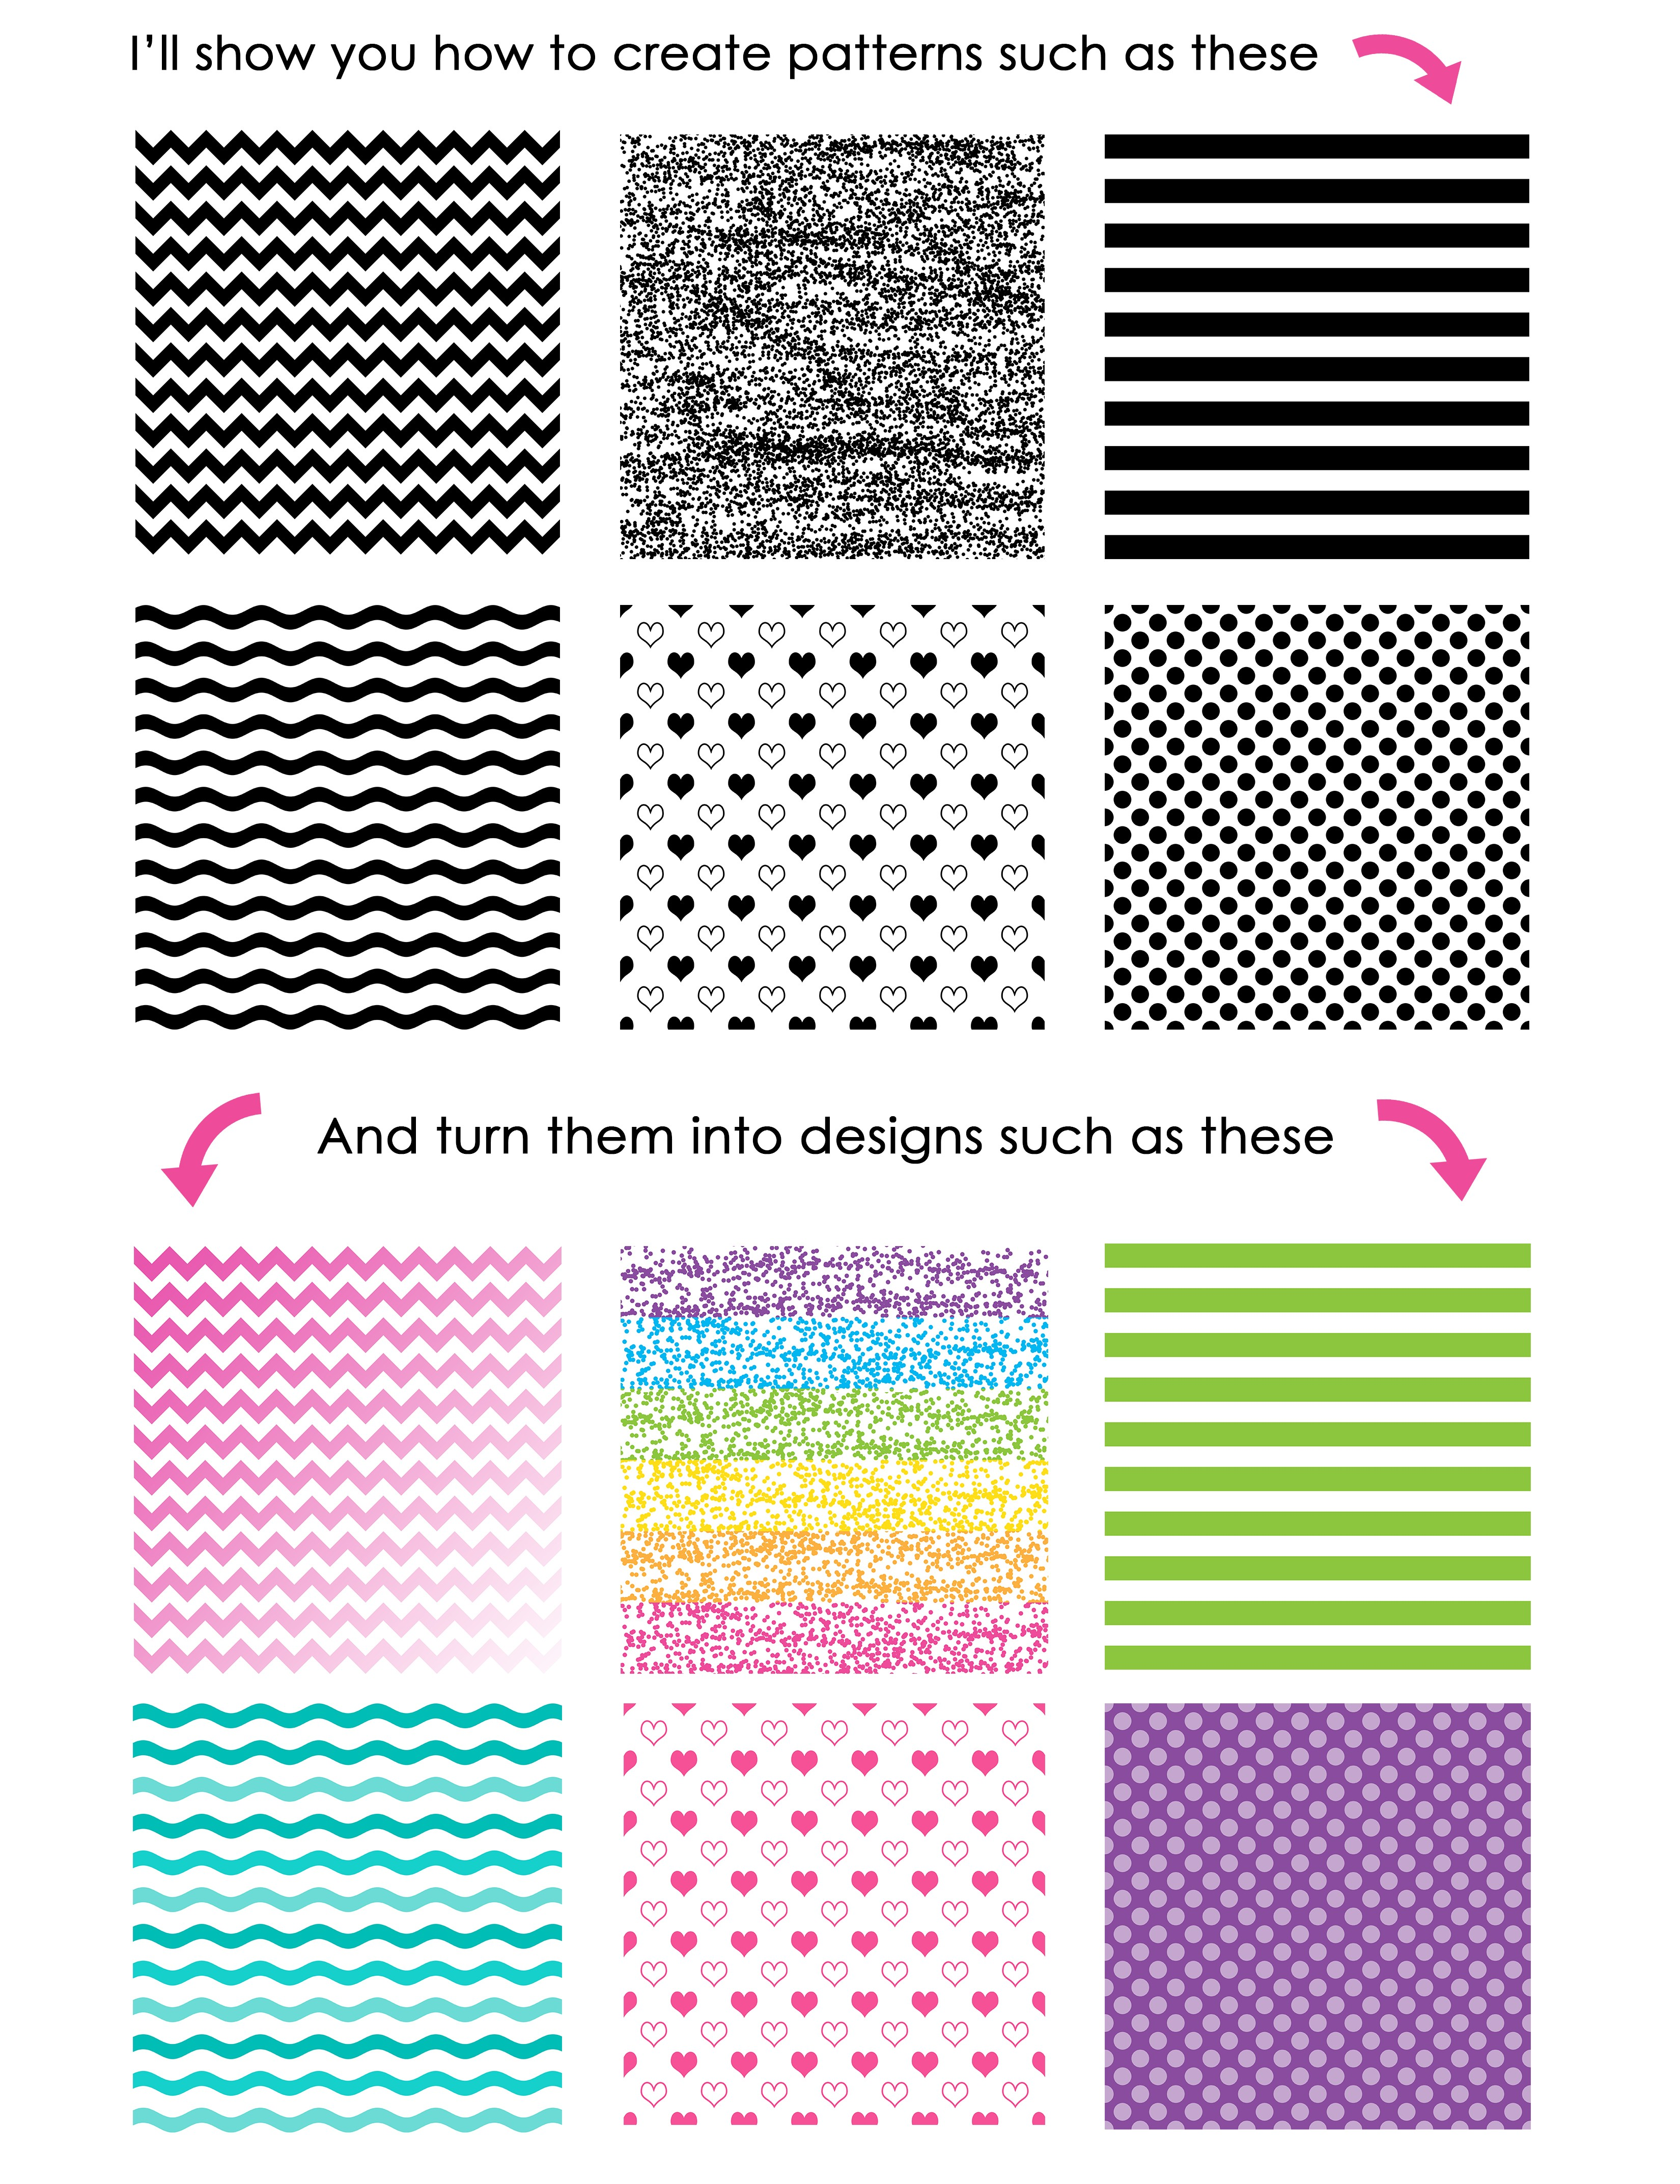 How To Create Patterns In Photoshop And Monetize Your